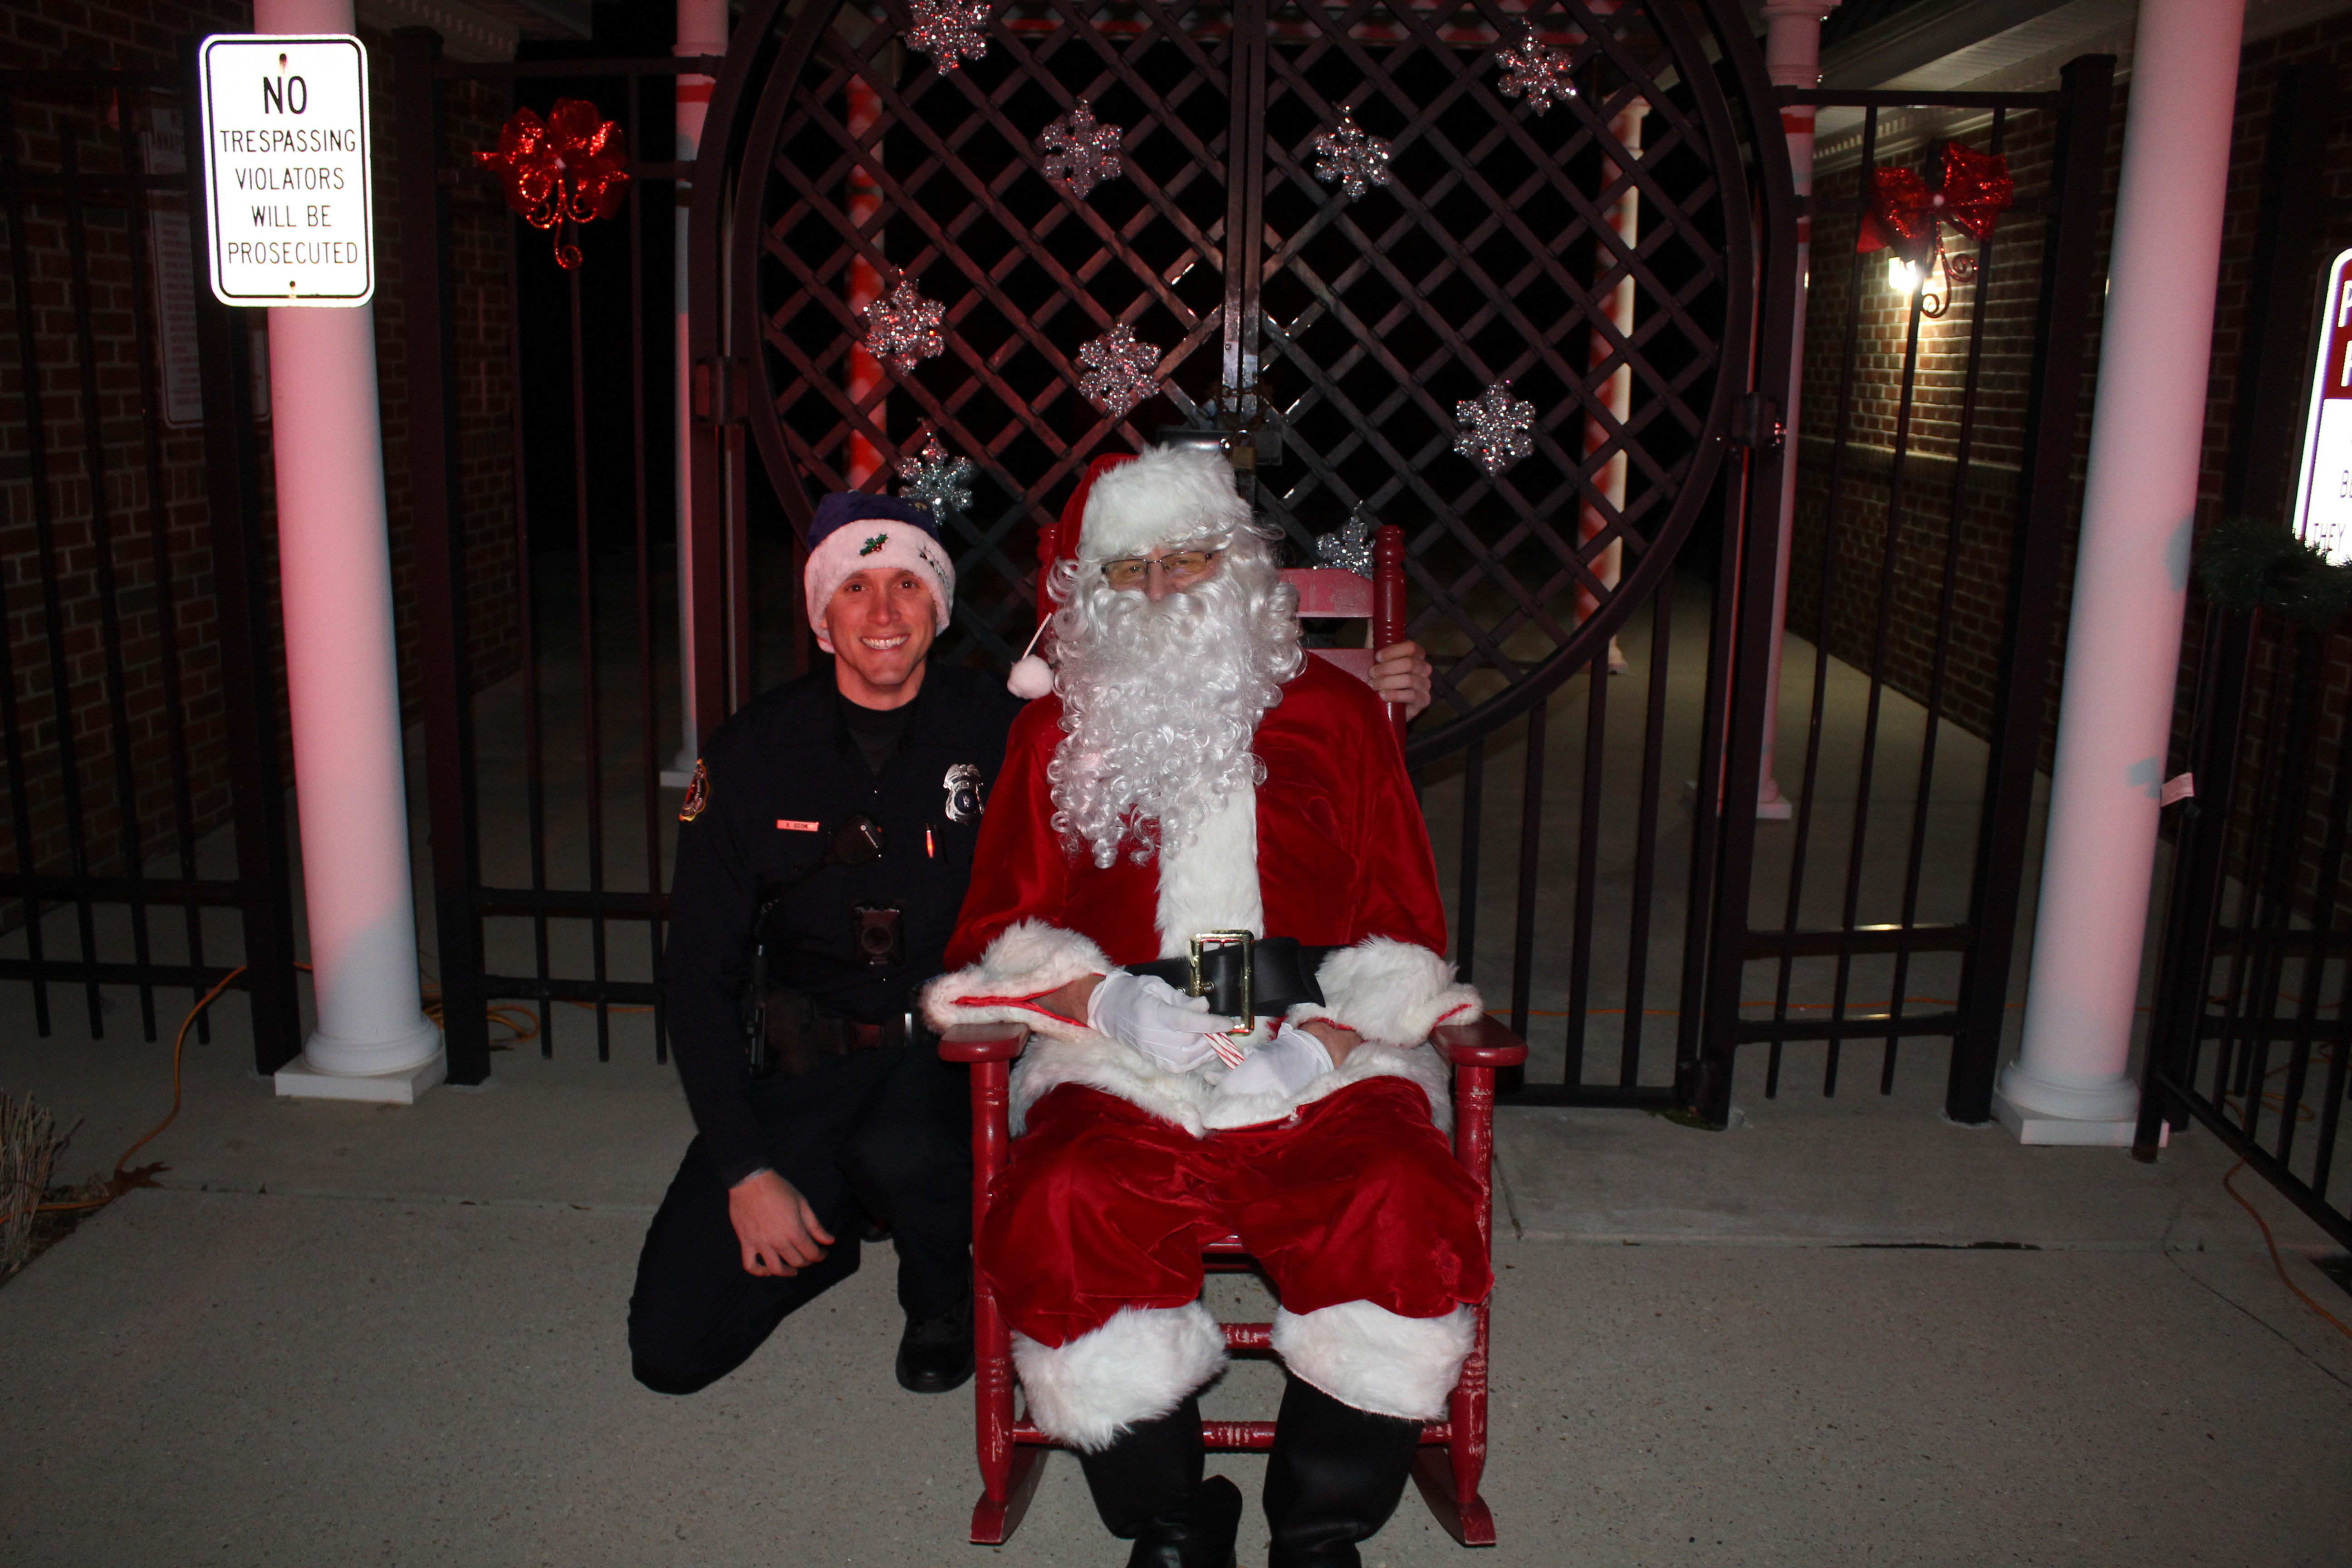 Santa sitting with police officer kneeling next to him.